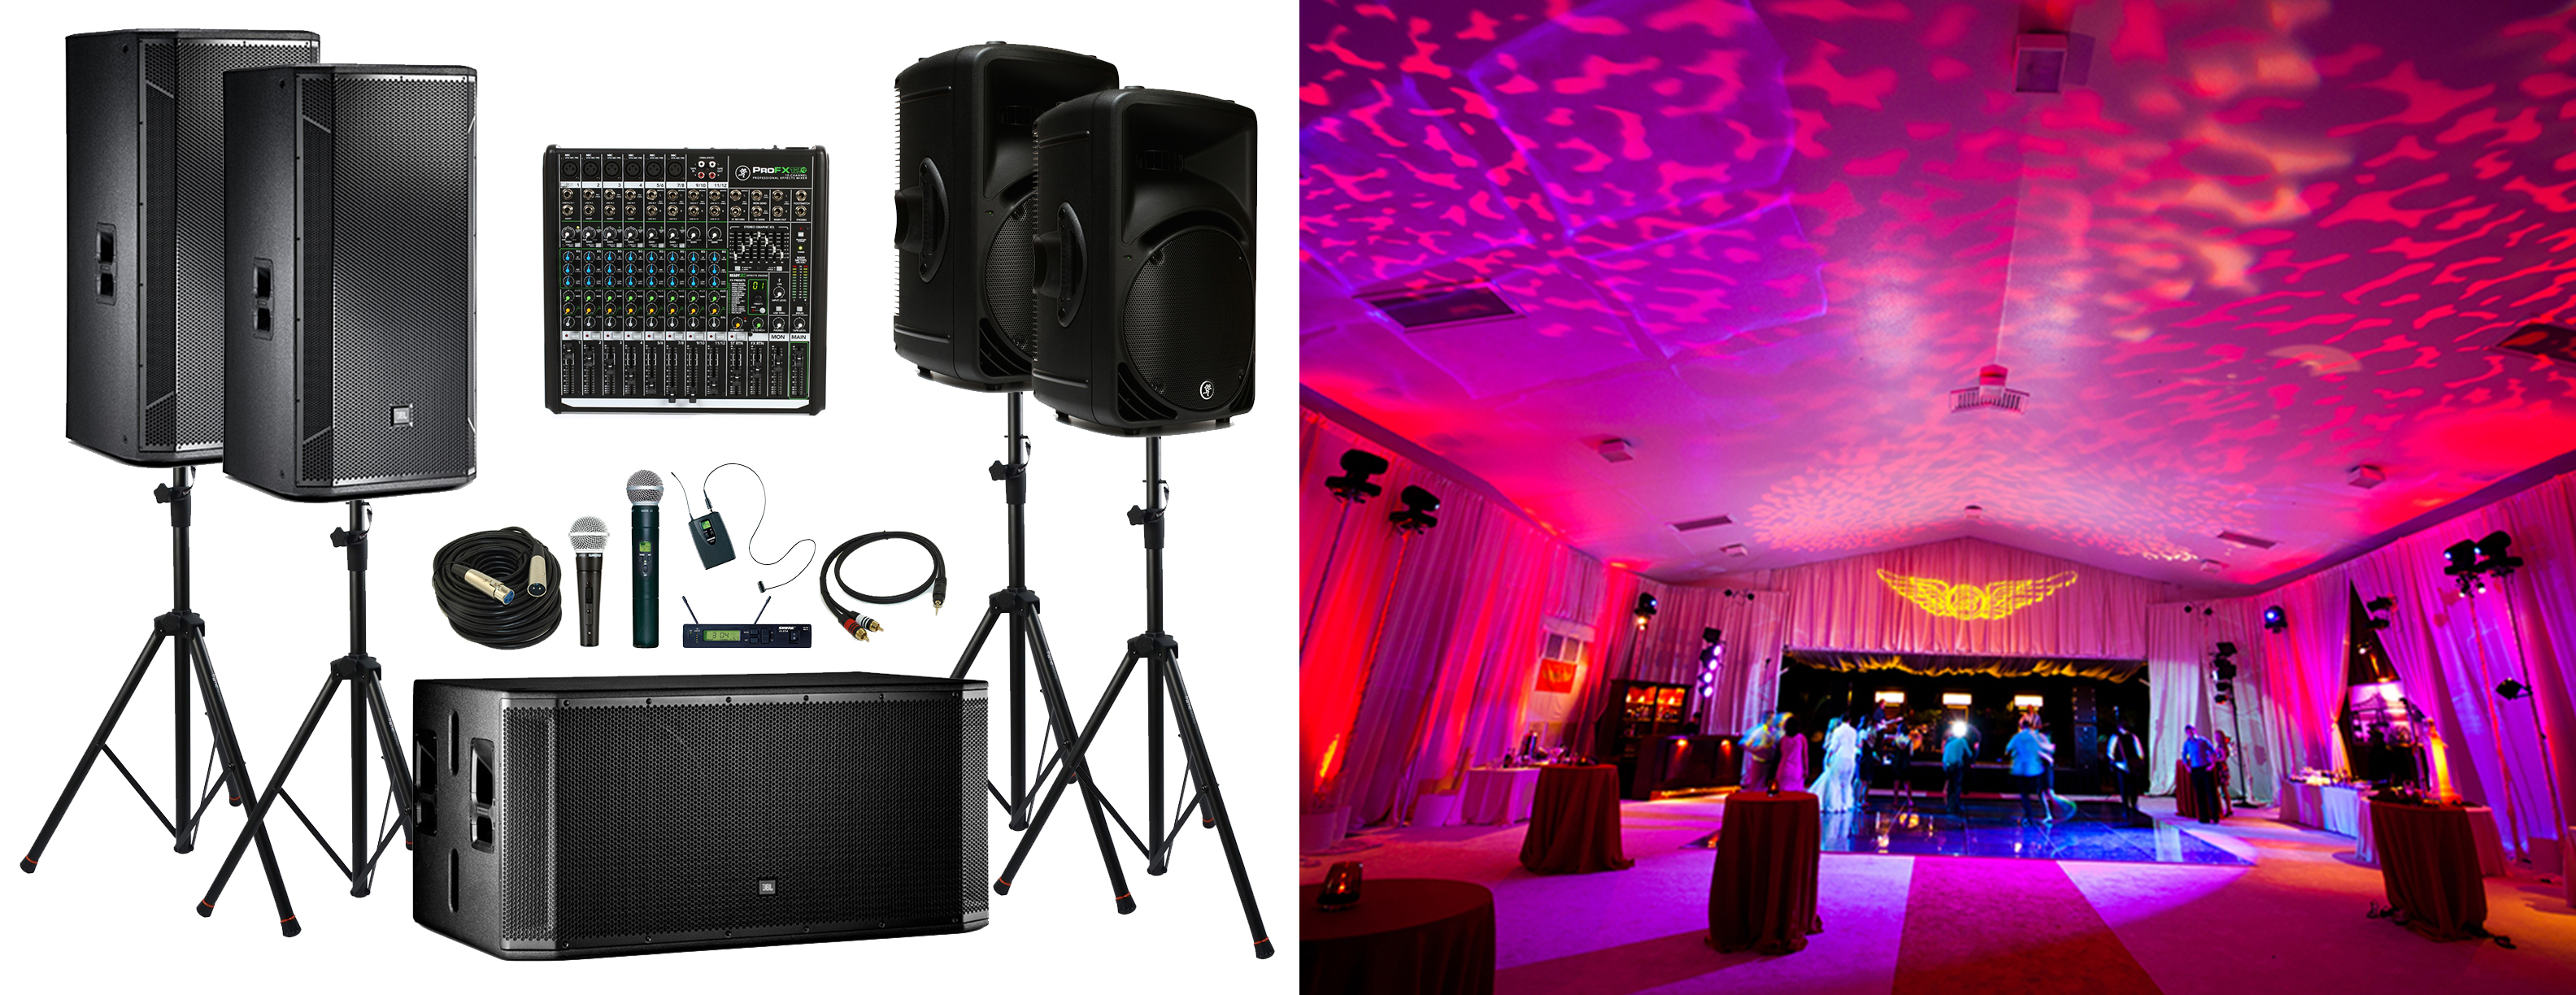 event sound and lighting system rental in kansas city